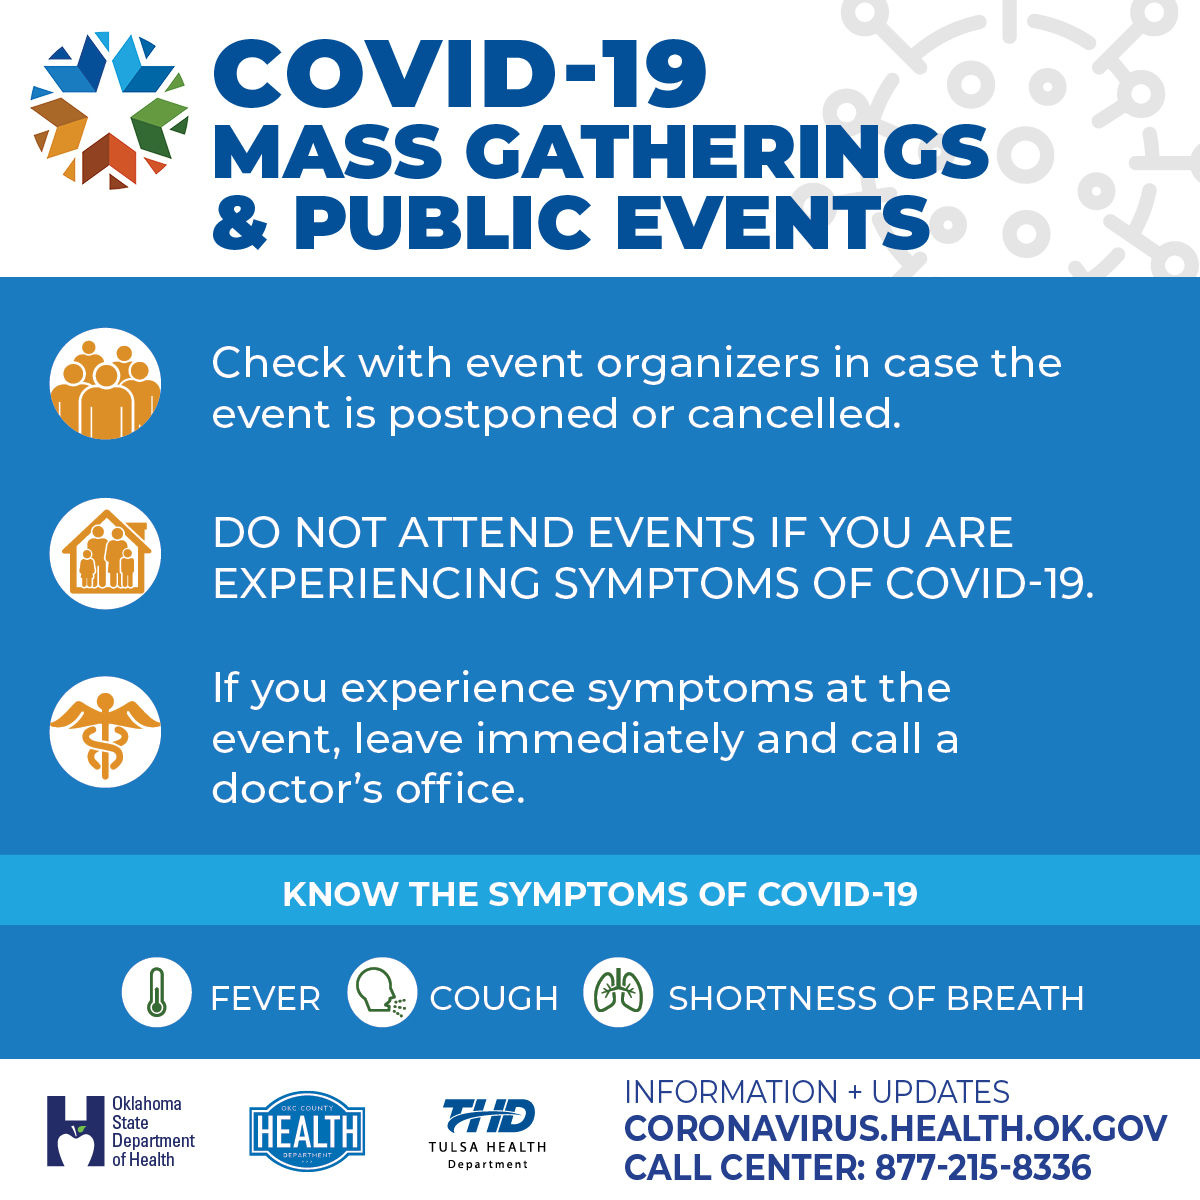 UPDATE: Oklahoma COVID-19 cases increases to 49 in 14 counties ...